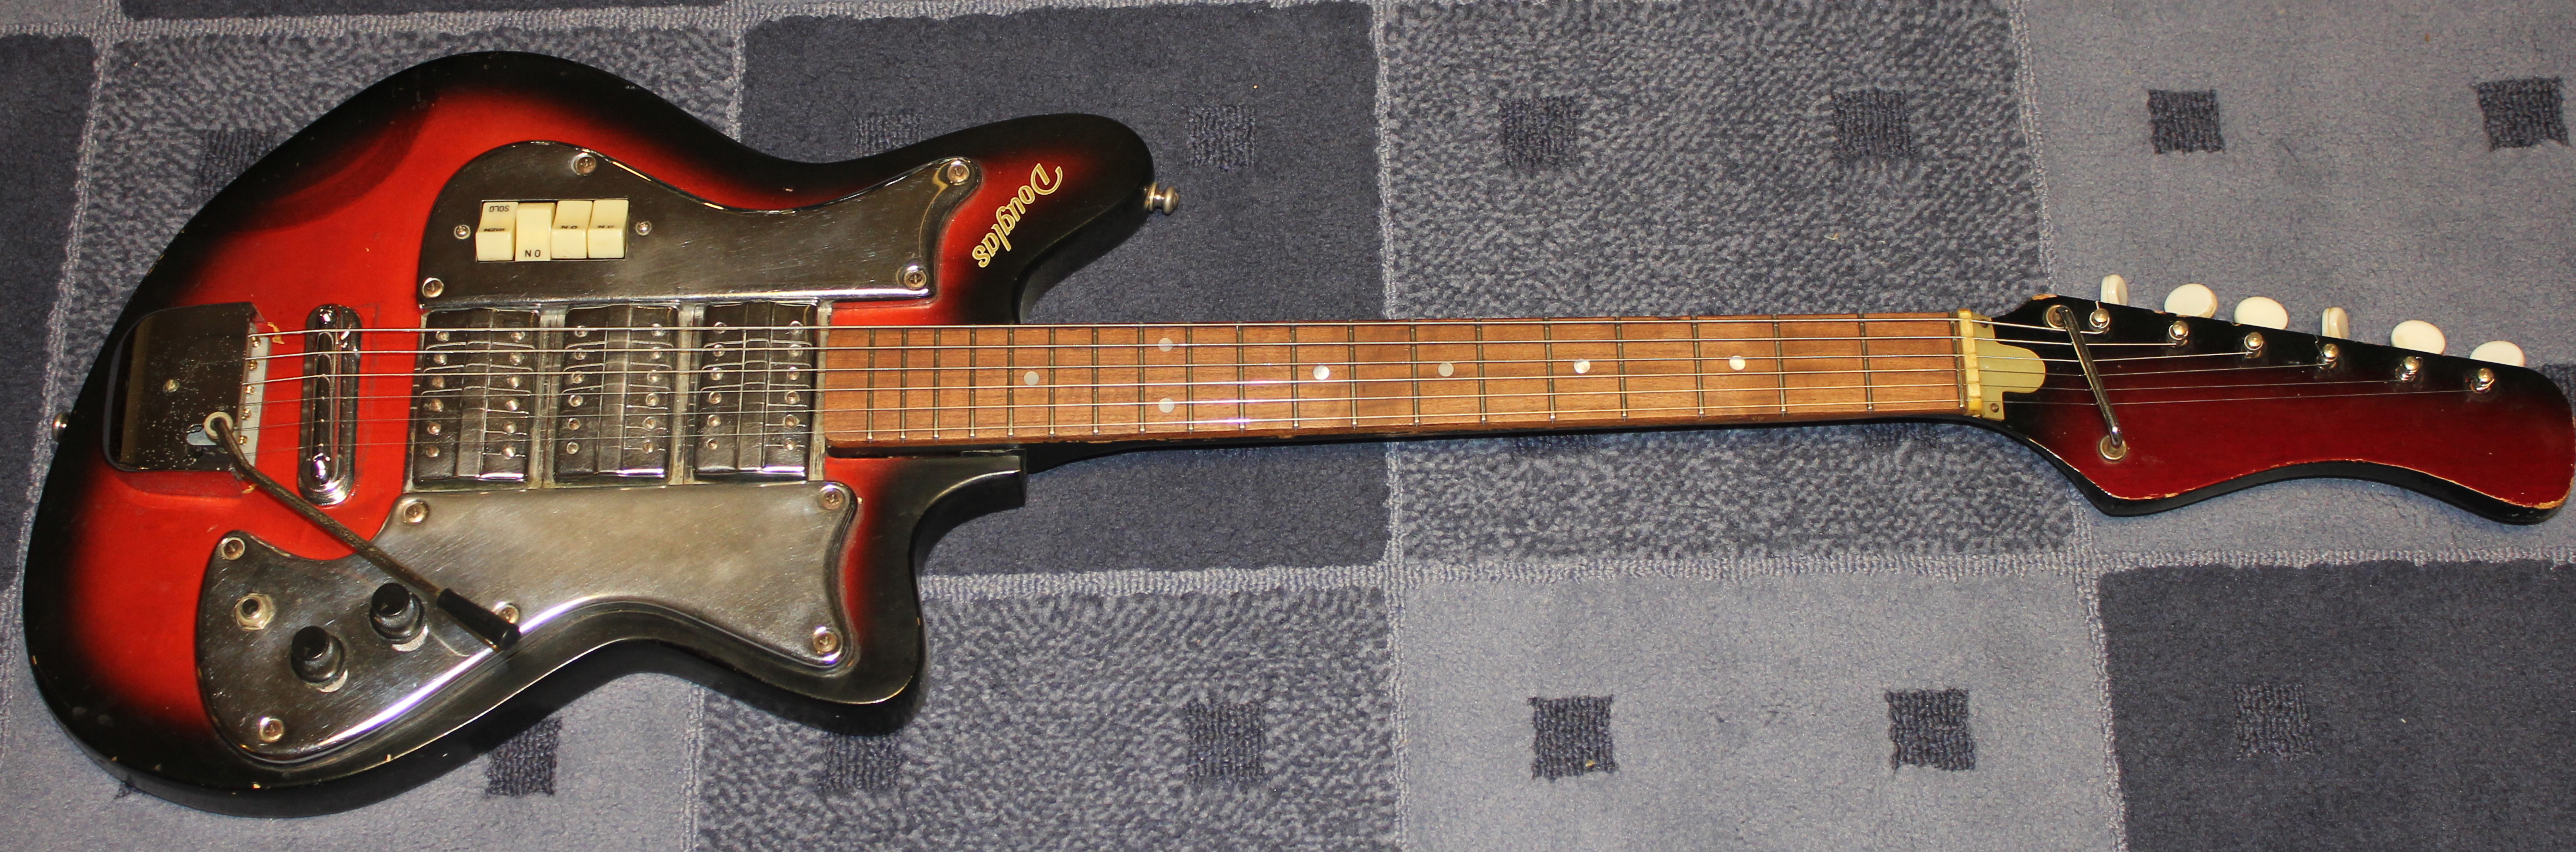 Vintage japan fender guitars for sale